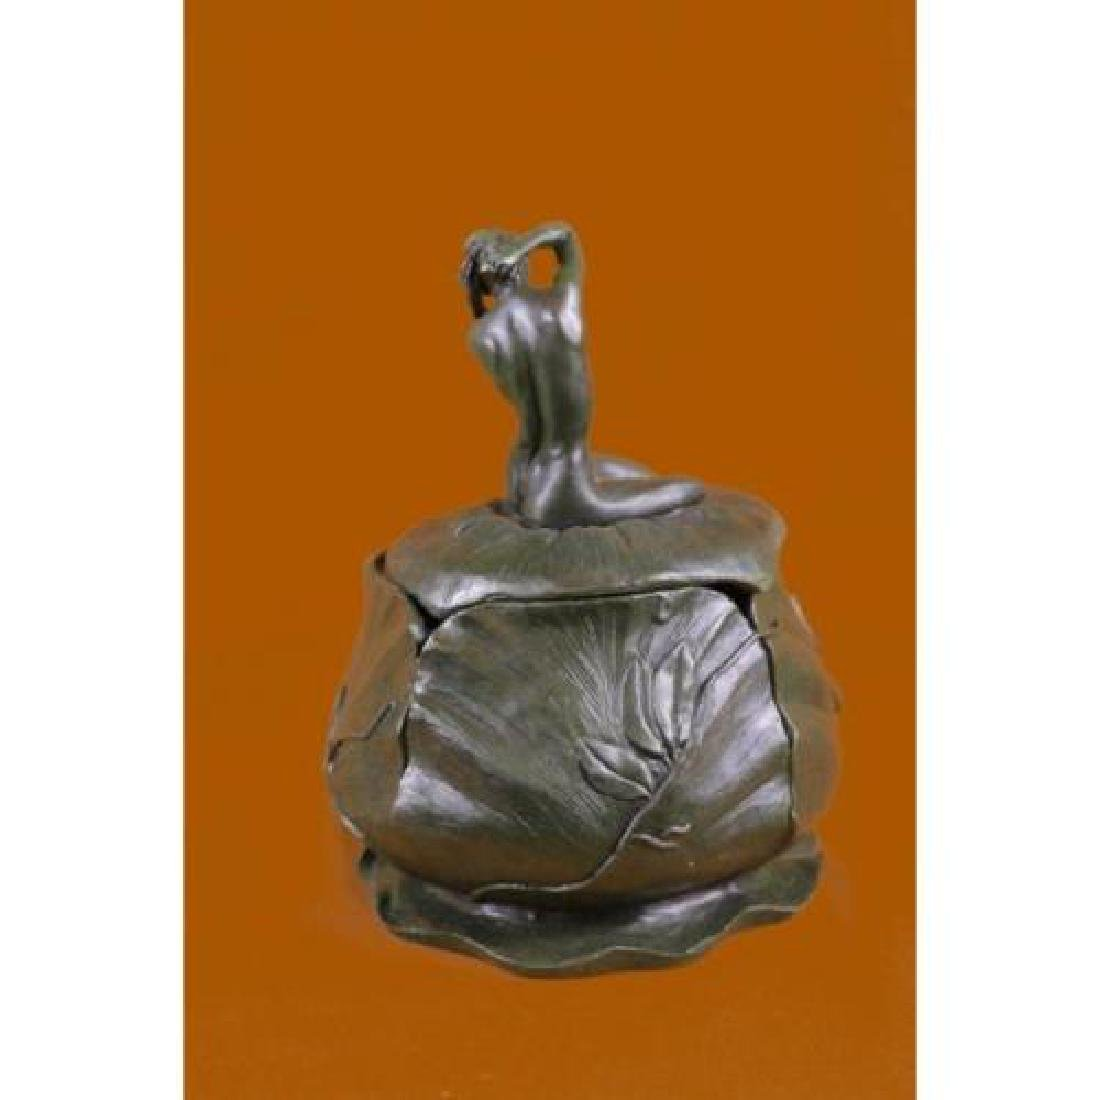 Bowl or Jewelry Box With Lid Bronze Sculpture - 3